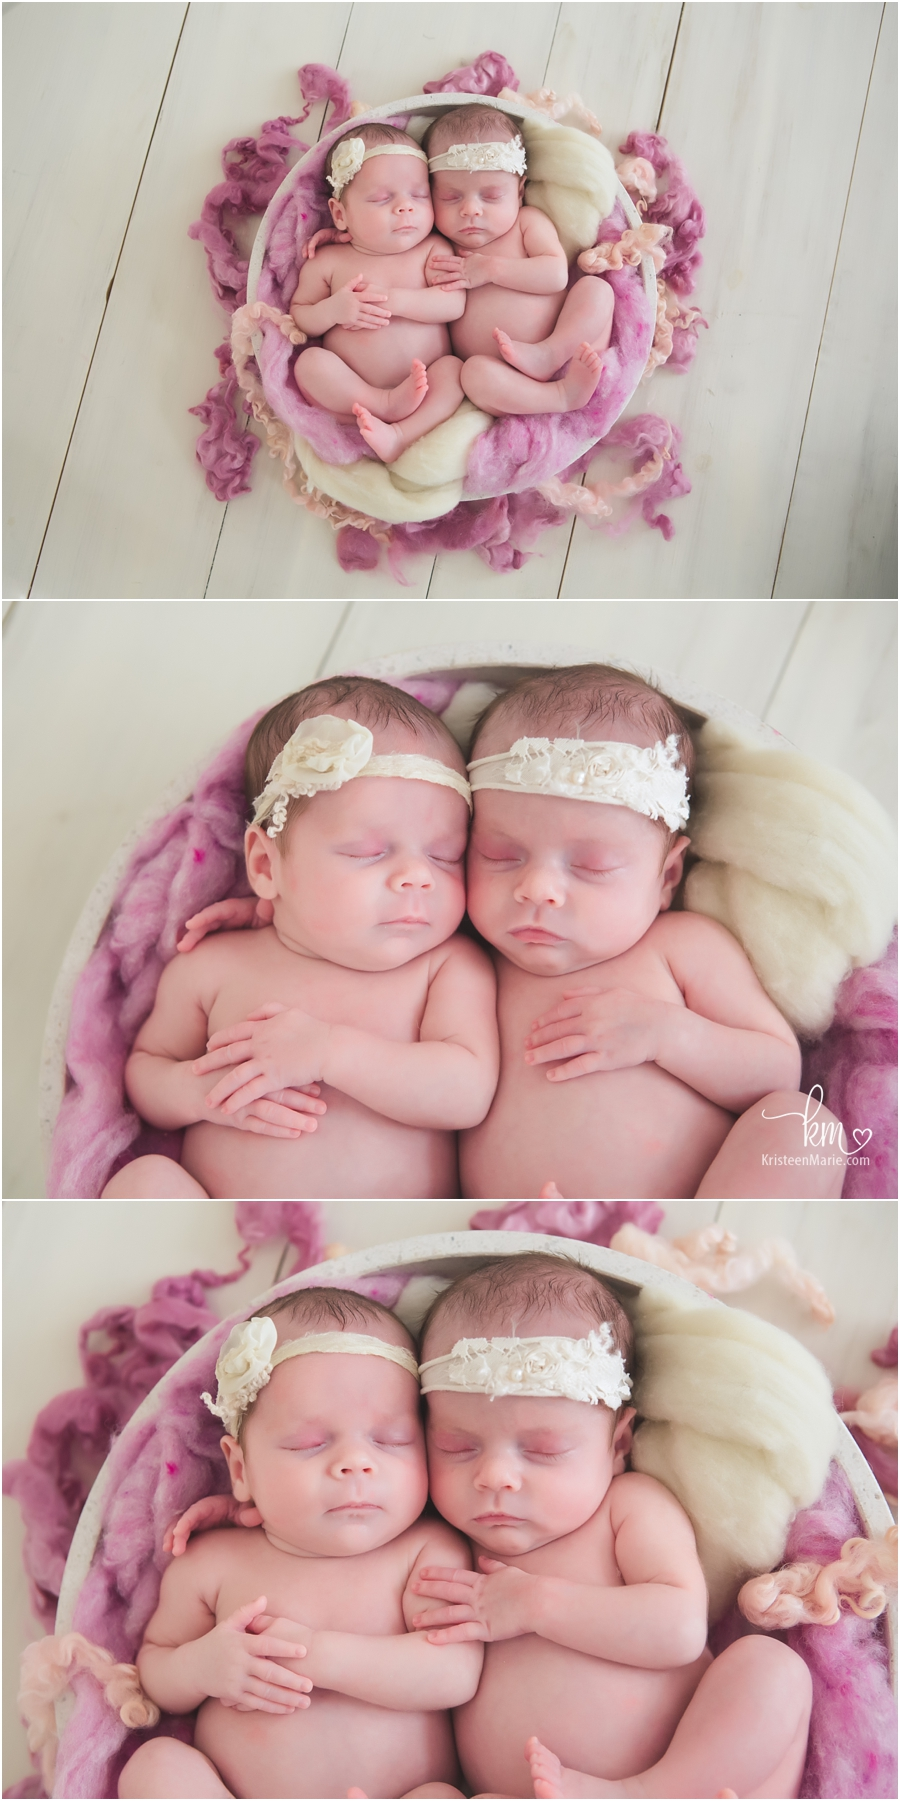 Newborn twins from Indianapolis - love the colors and textures for newborn girls